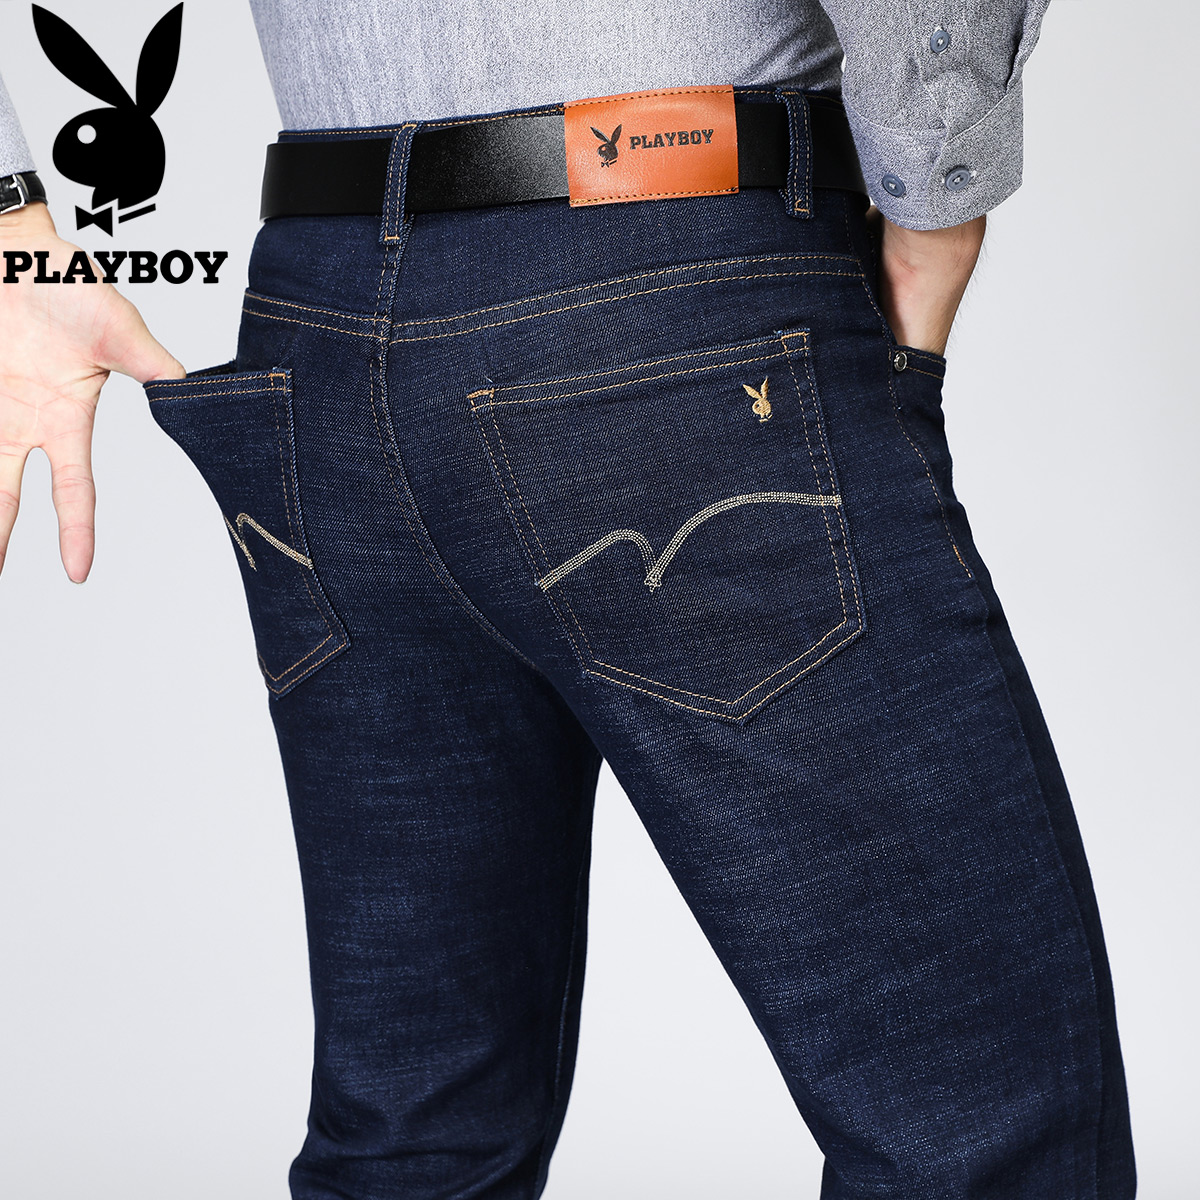 Playboy jeans men's loose straight casual men's pants elastic fit spring all-around water wash pants